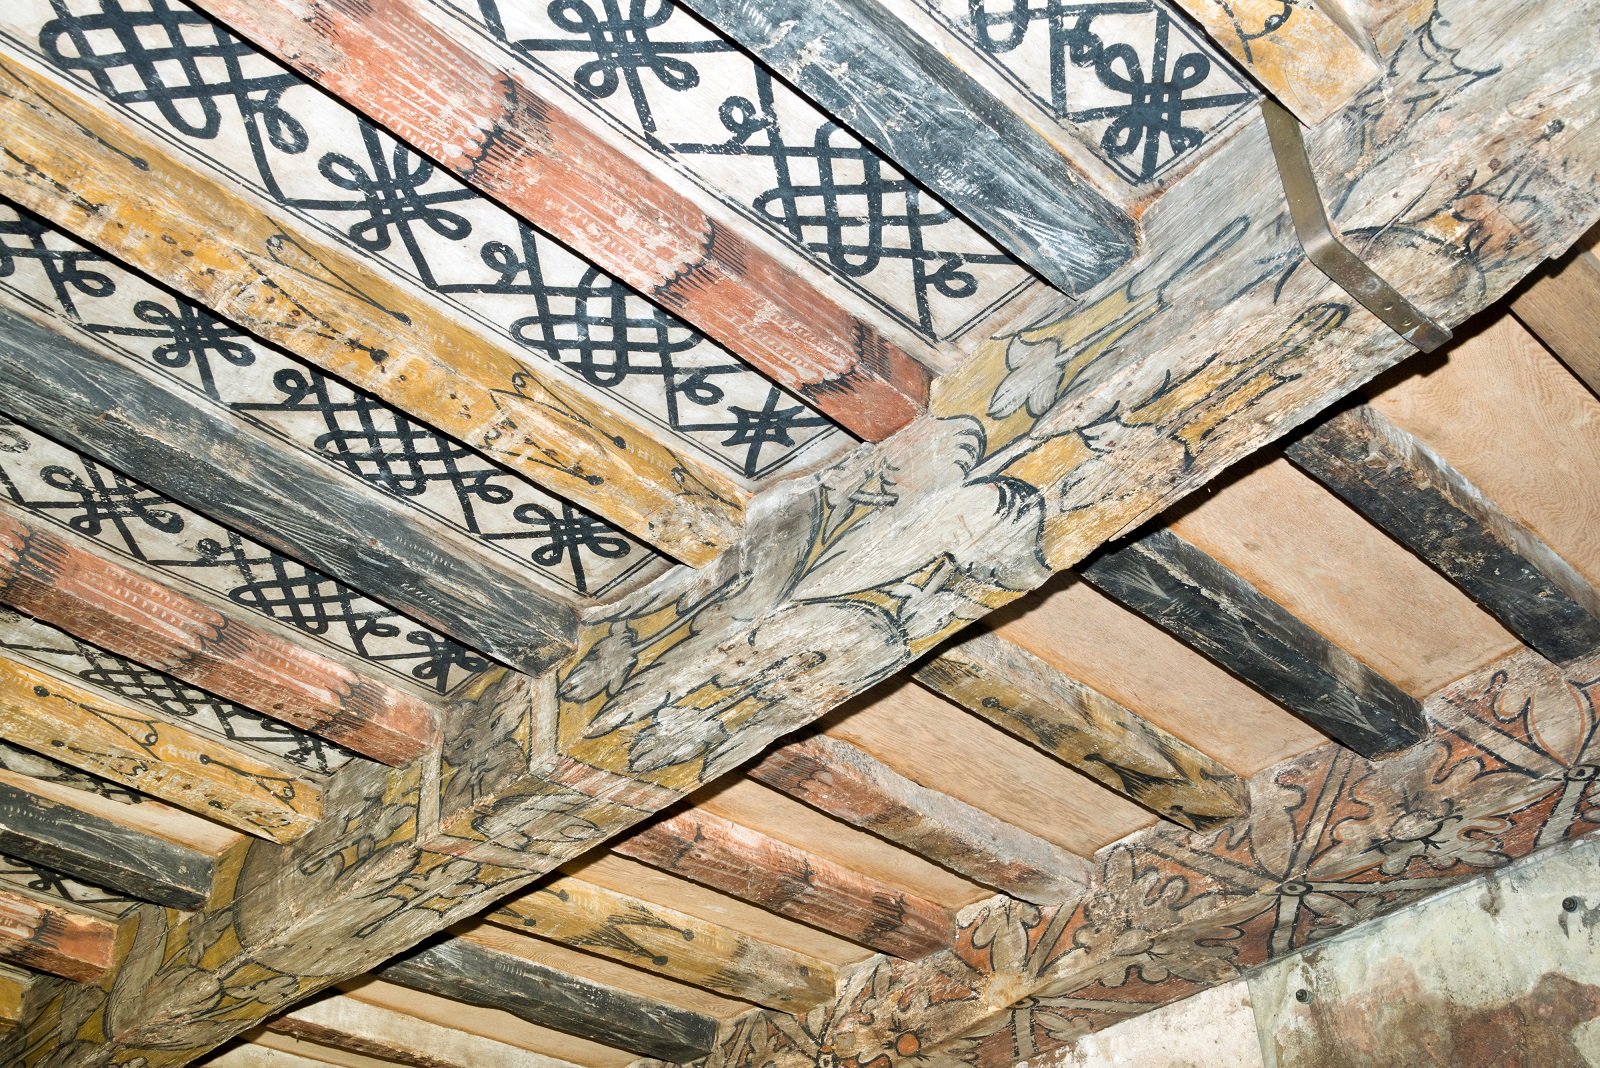 The painted ceiling at Huntingtower Castle